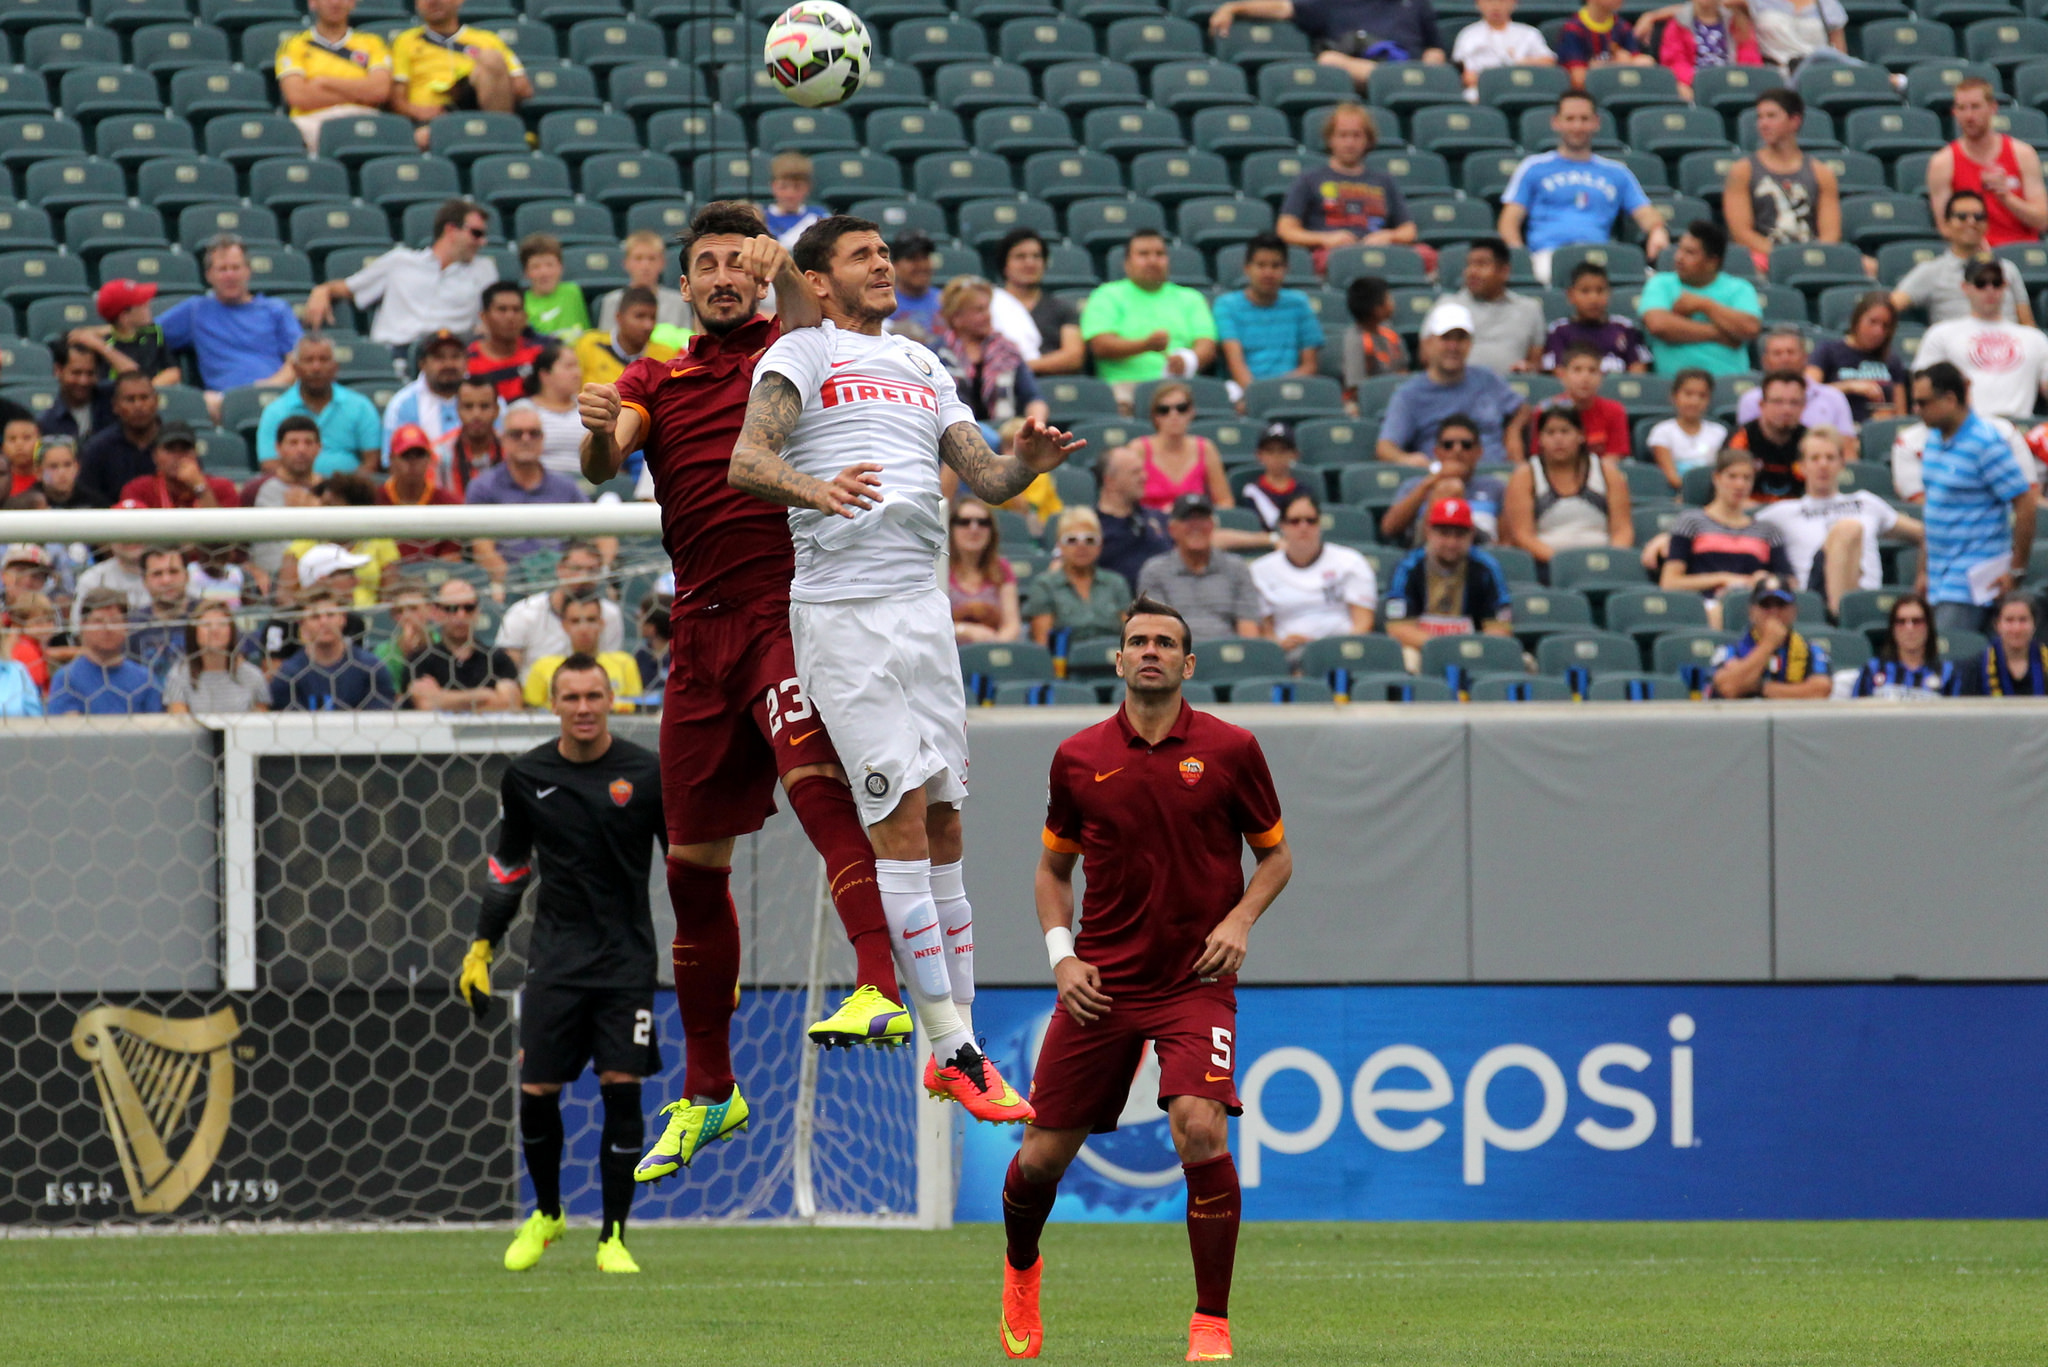 The opening match of the inaugural guinness inter national champions - Davide Astori And Mauro Icardi Battle In The Air